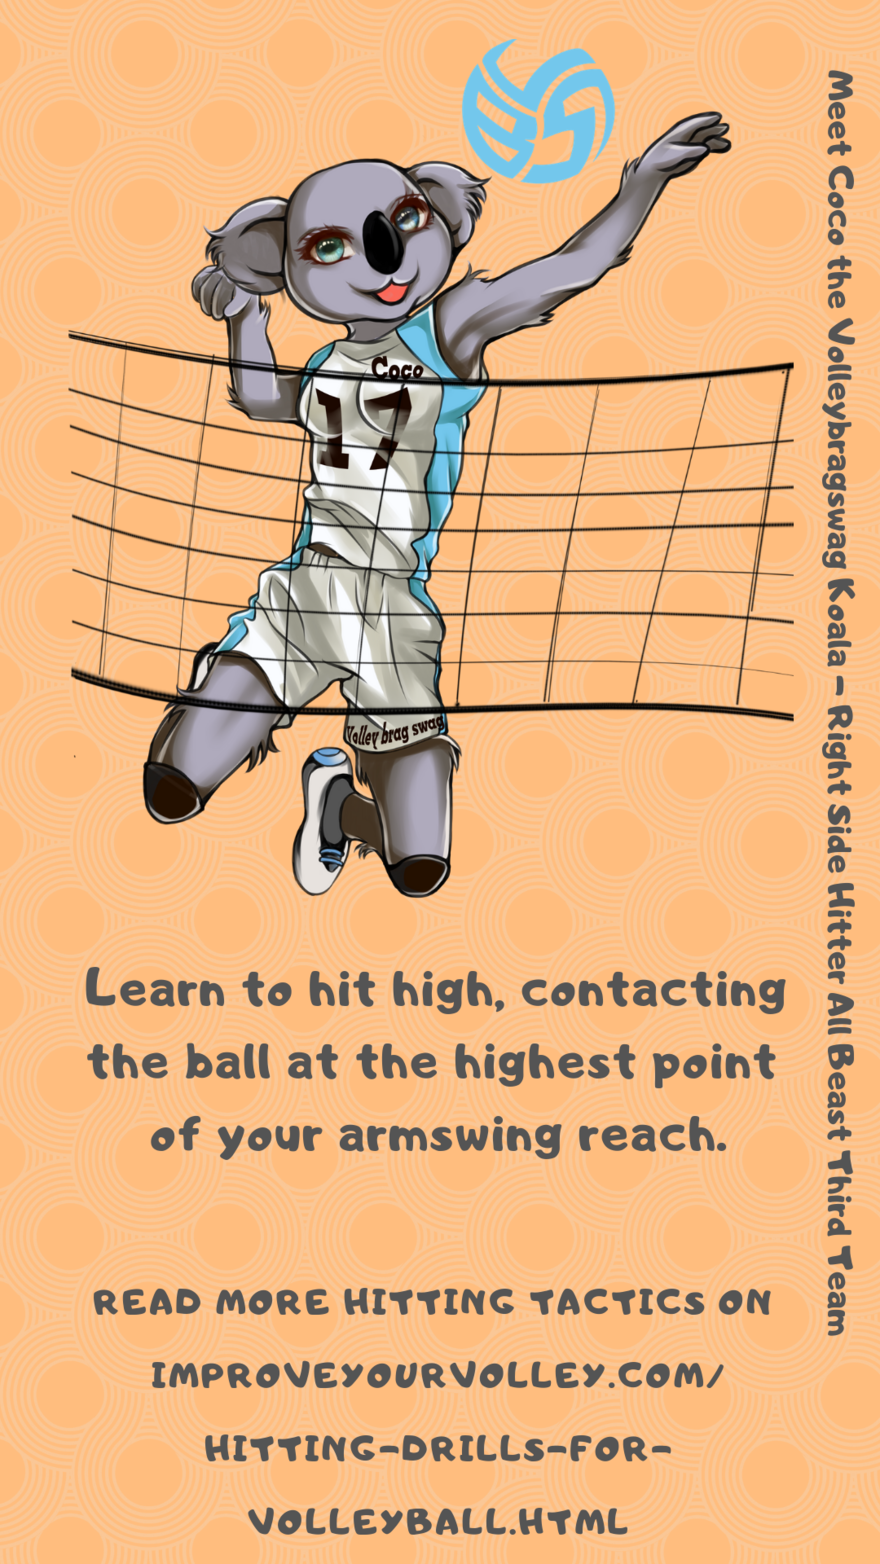 Hitting Tactics: Learn to hit high contacting the ball at the top of your armswing reach and at the highest point of your vertical jump.